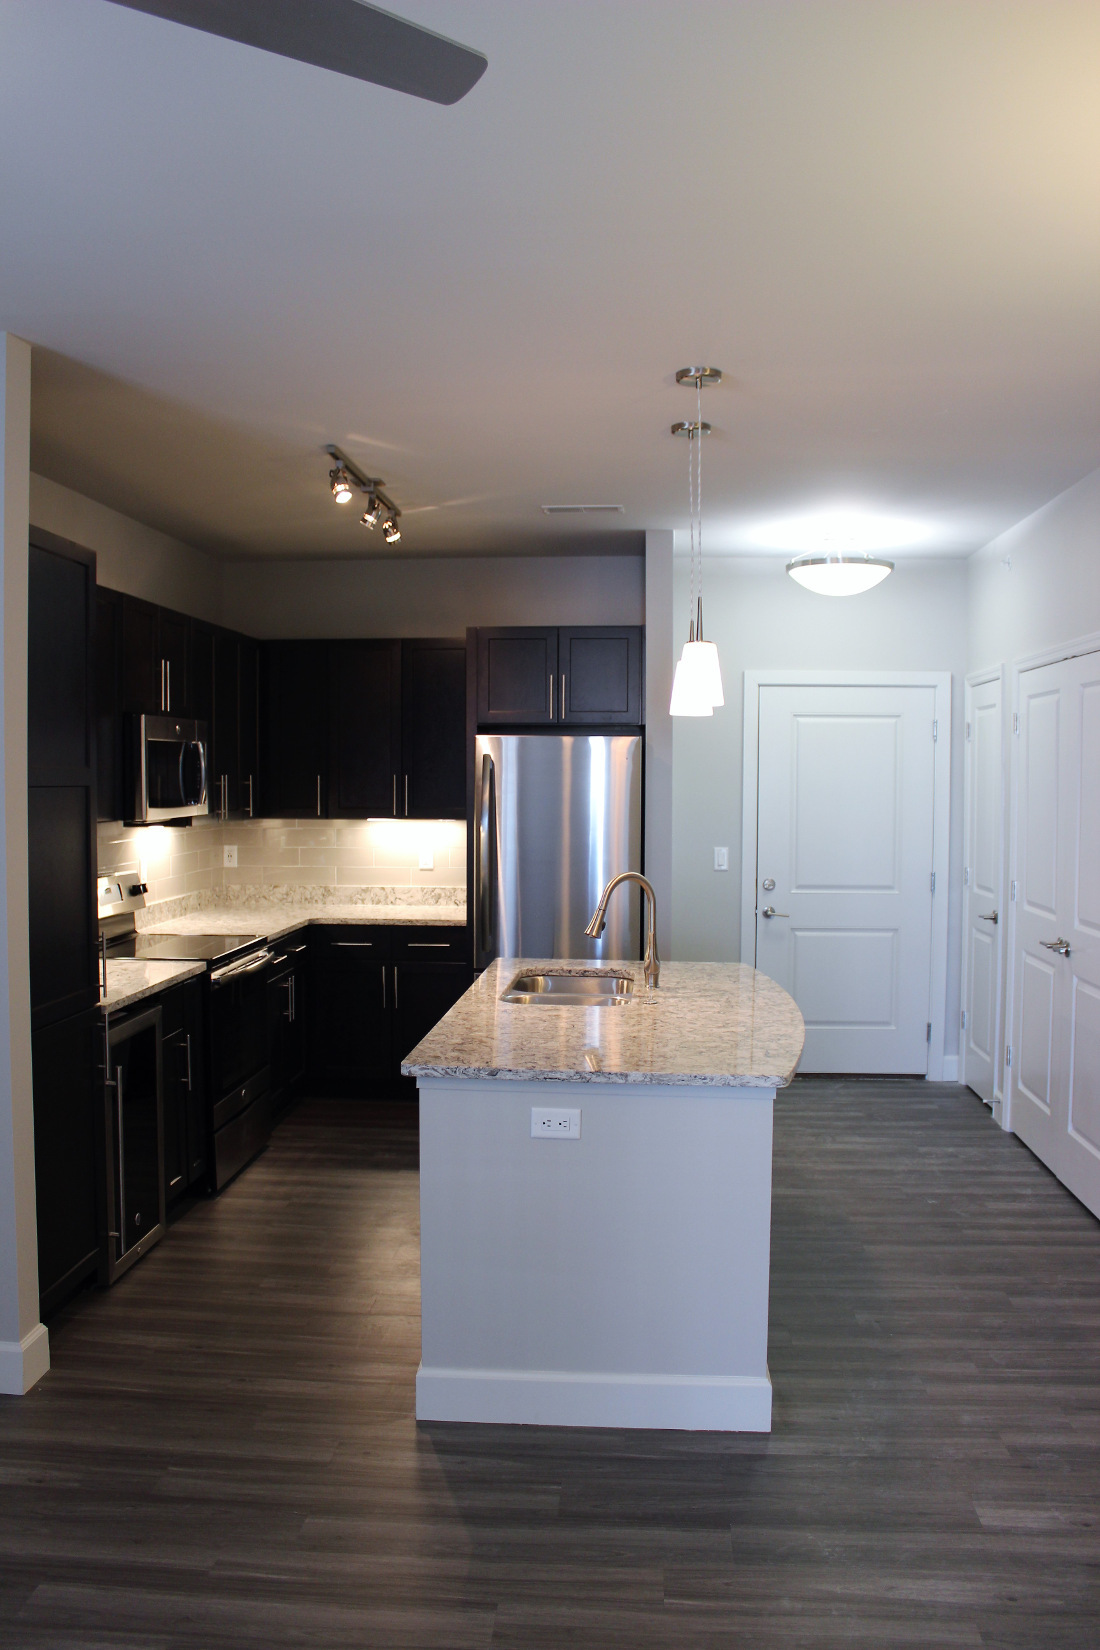 A1 Kitchen at the Vue at Creve Coeur Apartments in Creve Coeur, MO